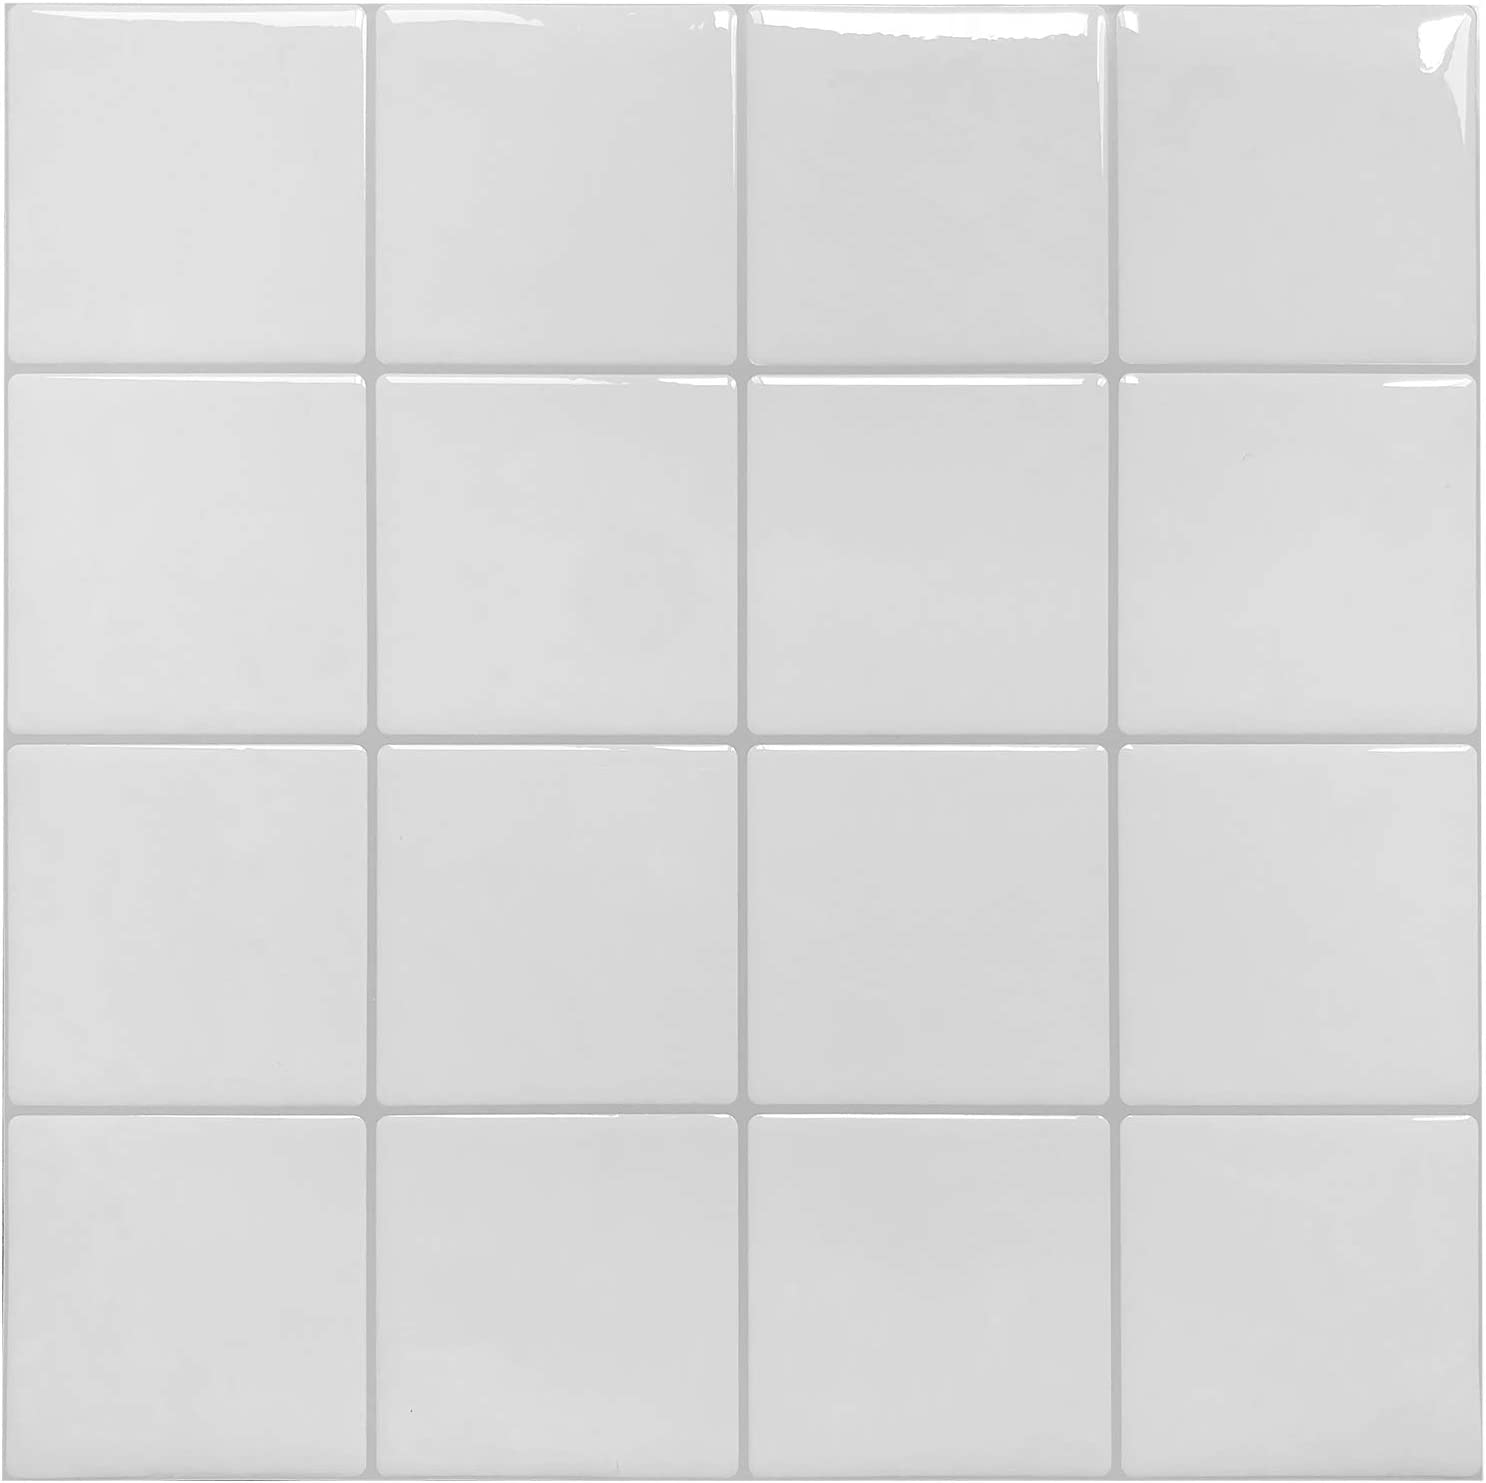 Peel and Stick Kitchen Backsplash Tiles, White Decorative Tile (10 Sheets)